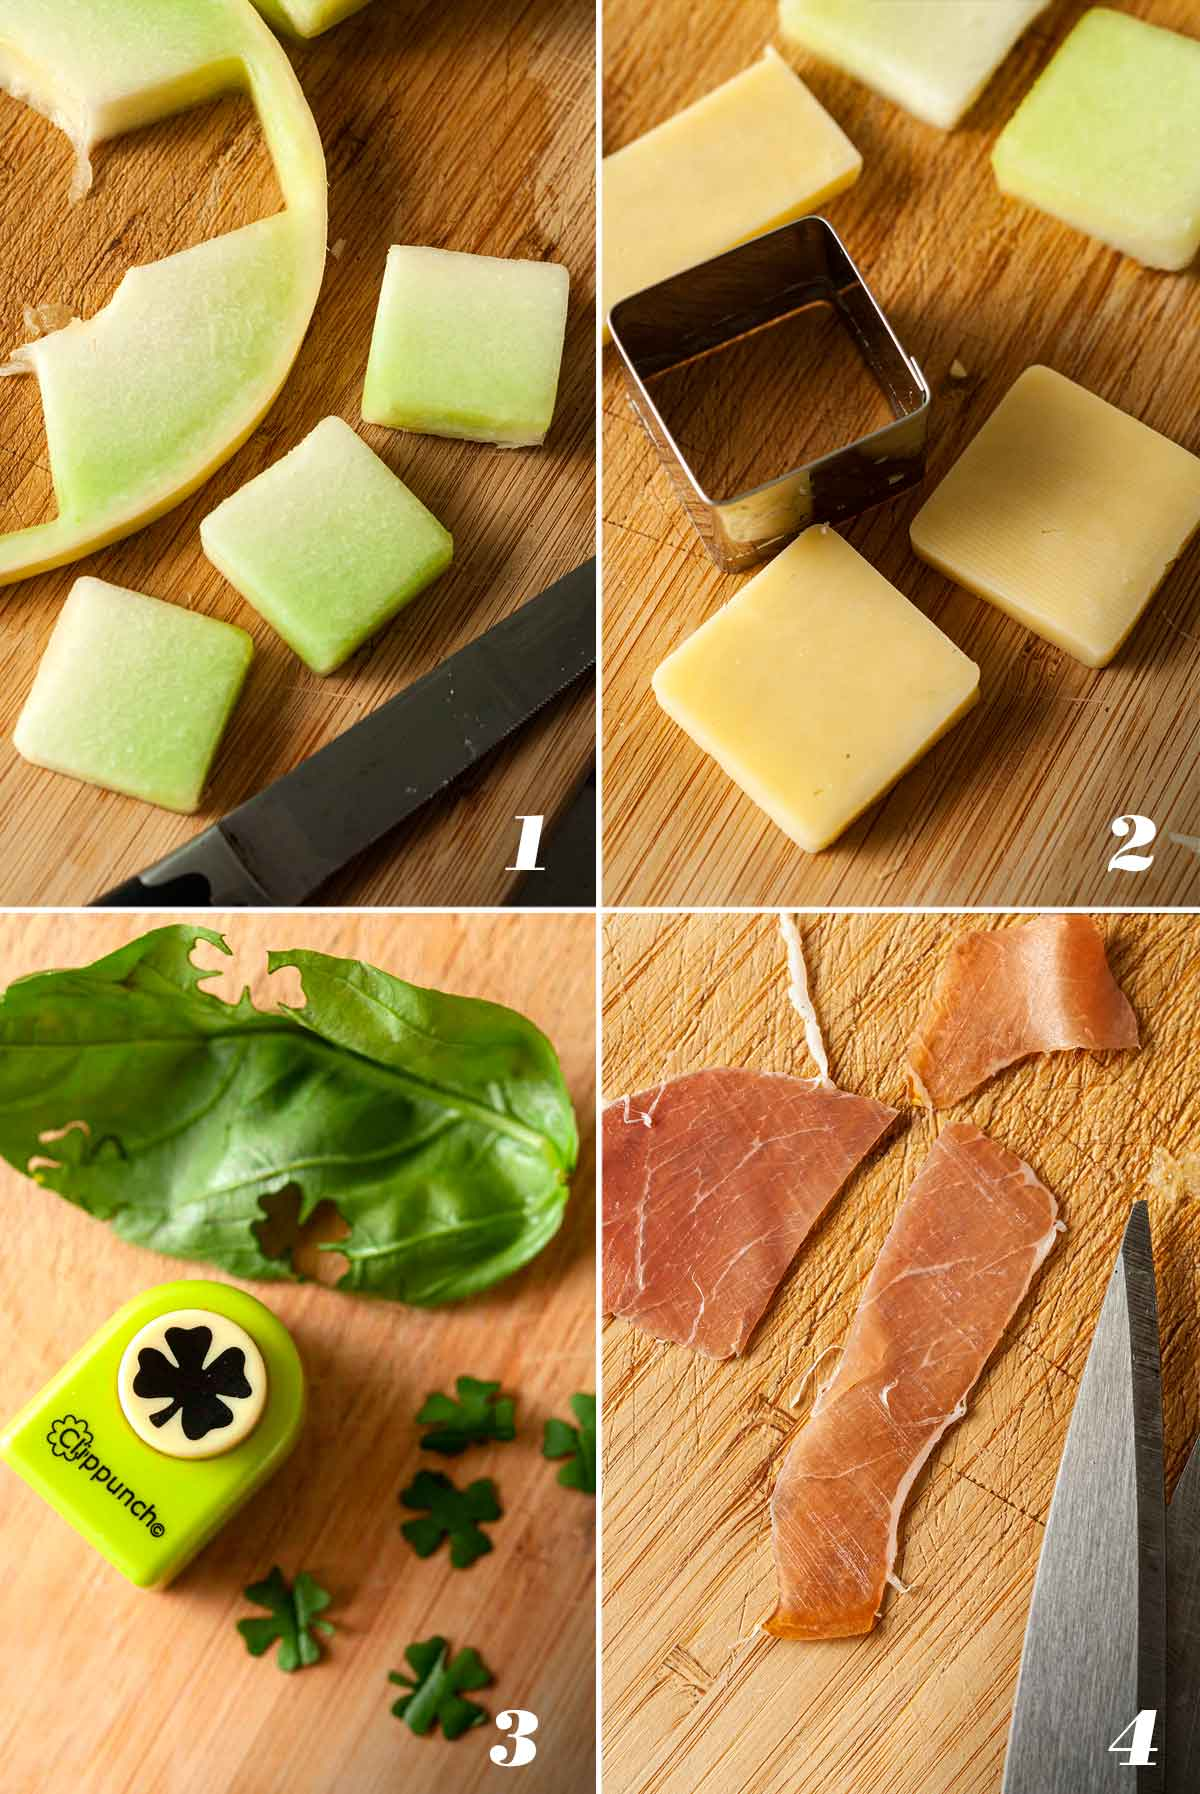 4 numbered images showing how to make melon appetizers.